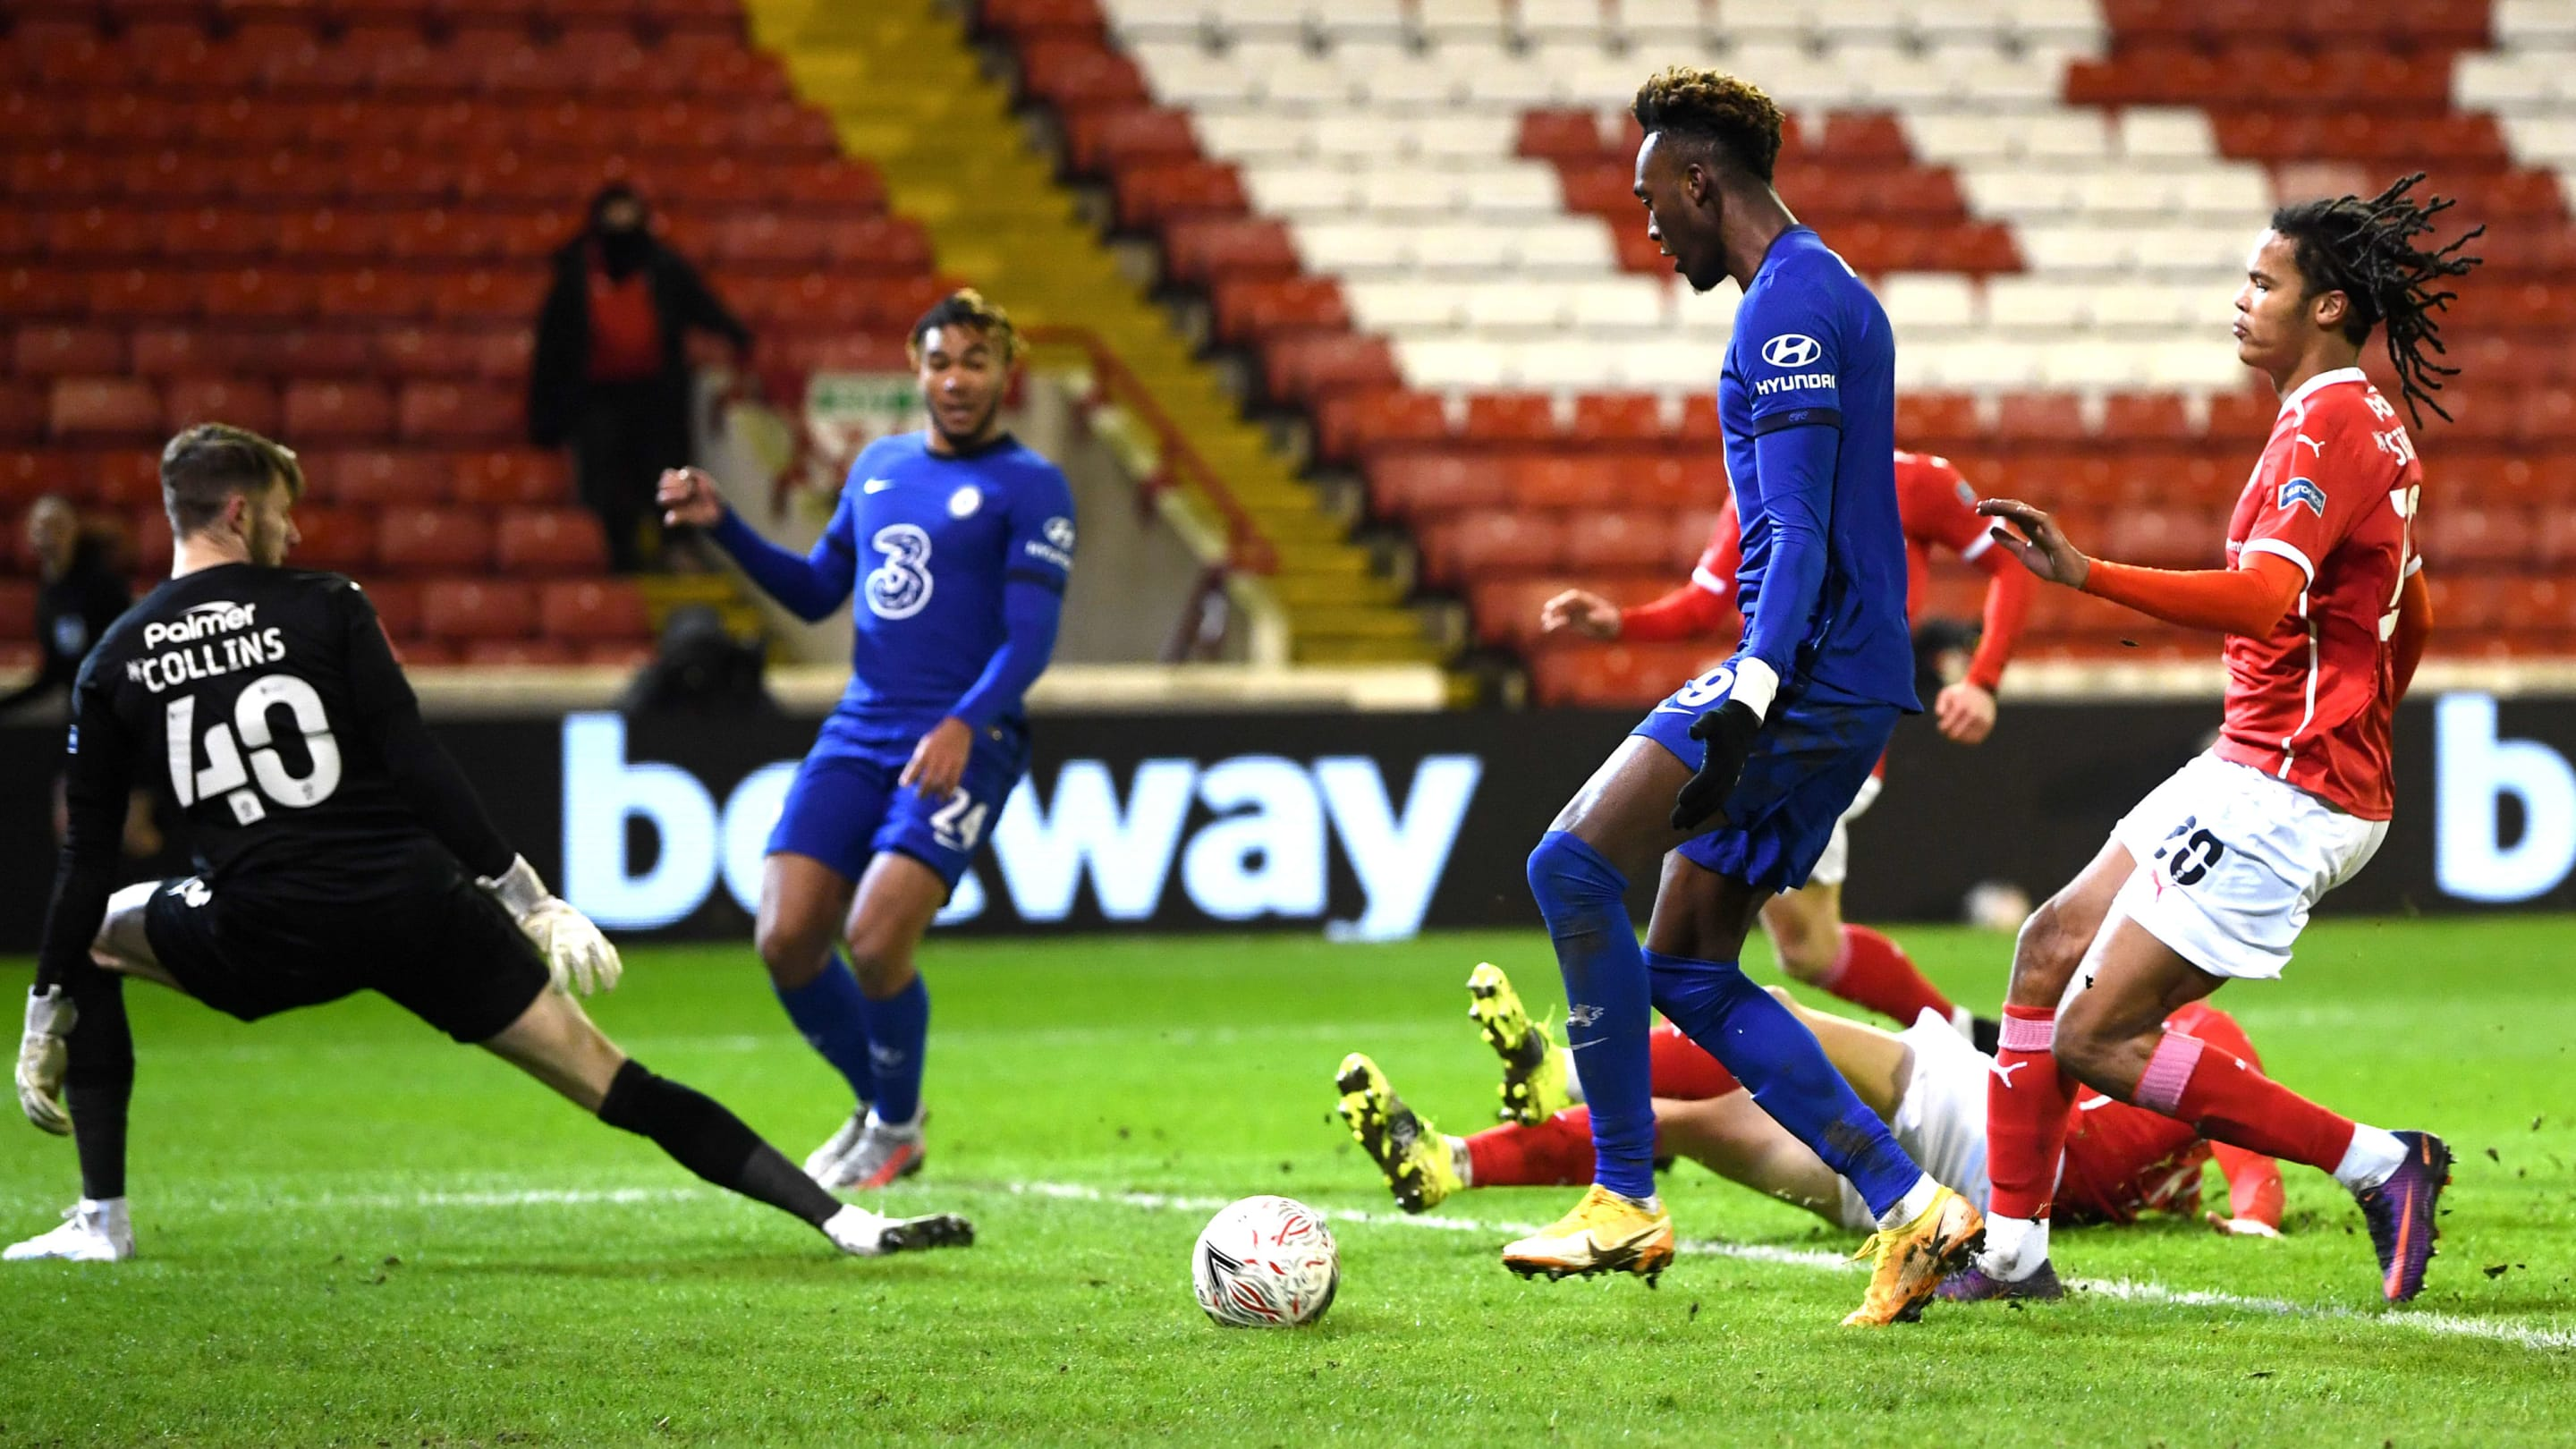 Barnsley 0-1 Chelsea: Player ratings as Tammy Abraham attack sends Blues to FA Cup quarter finals thumbnail